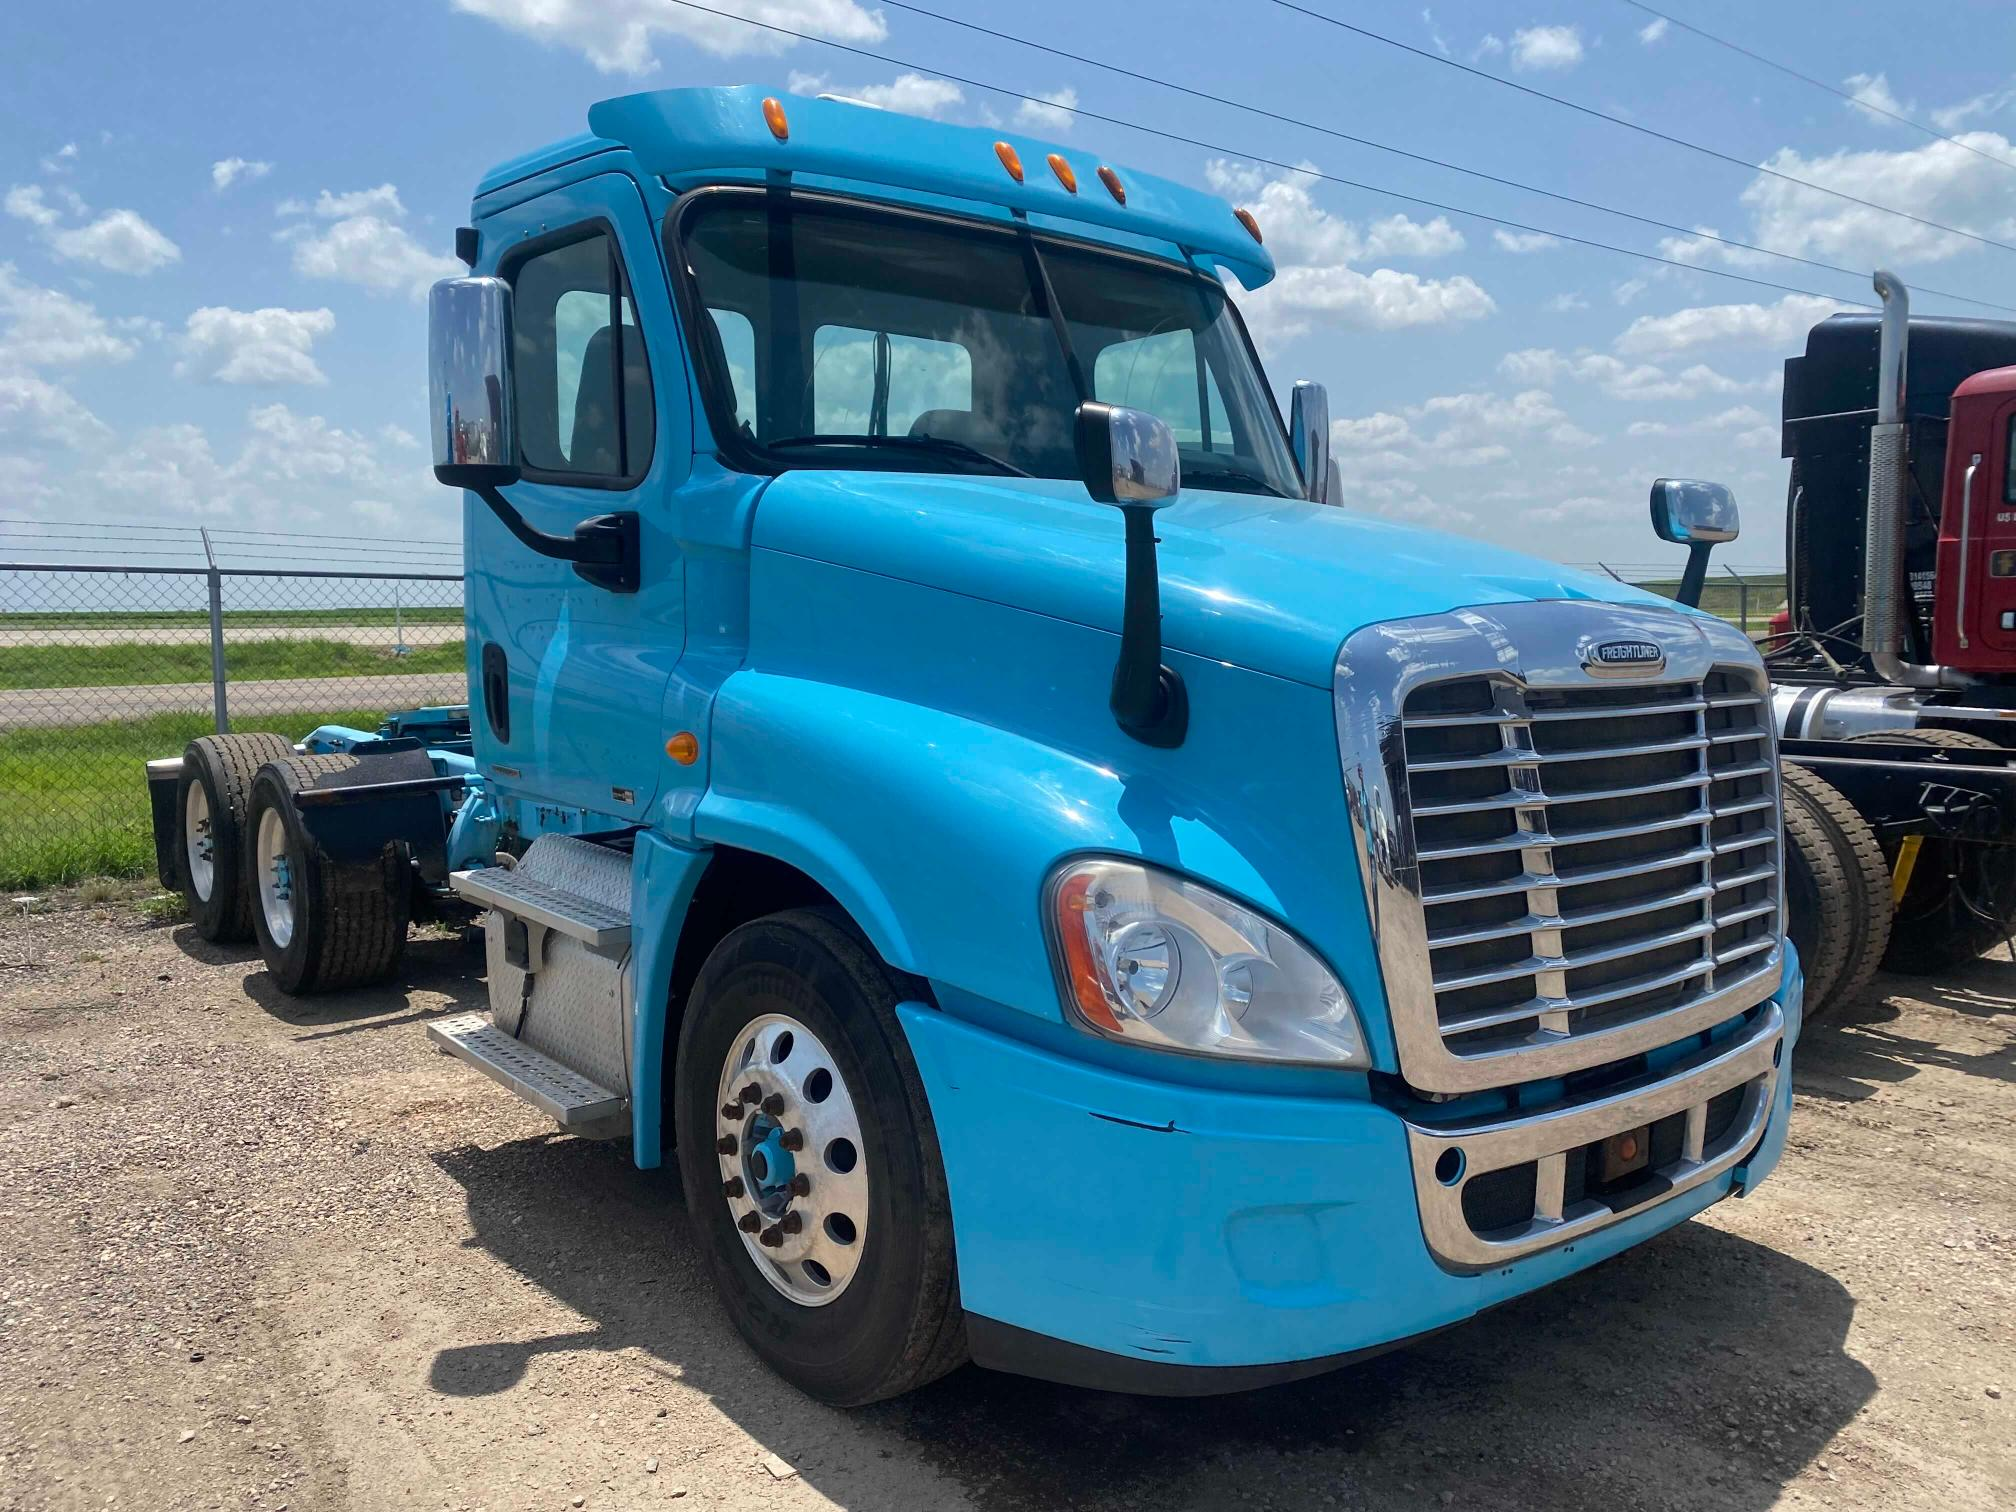 Freightliner Cascadia 1 salvage cars for sale: 2012 Freightliner Cascadia 1